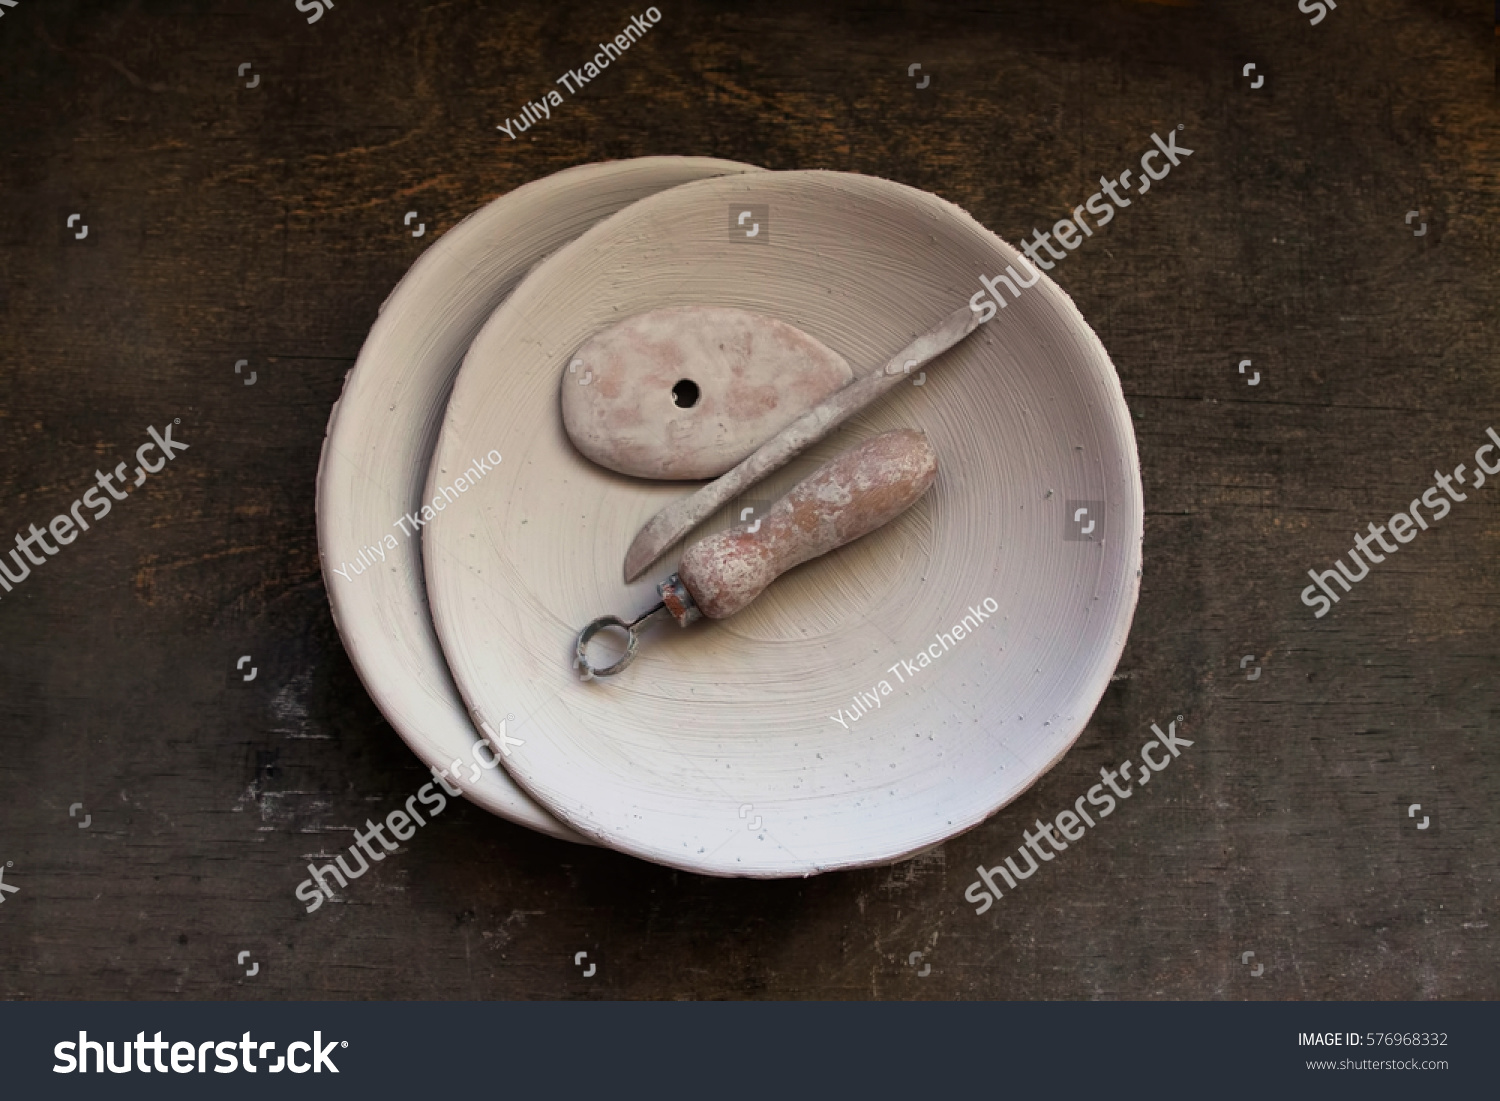 Ceramic working process. Making plates. & Ceramic Working Process Making Plates Stock Photo (Royalty Free ...